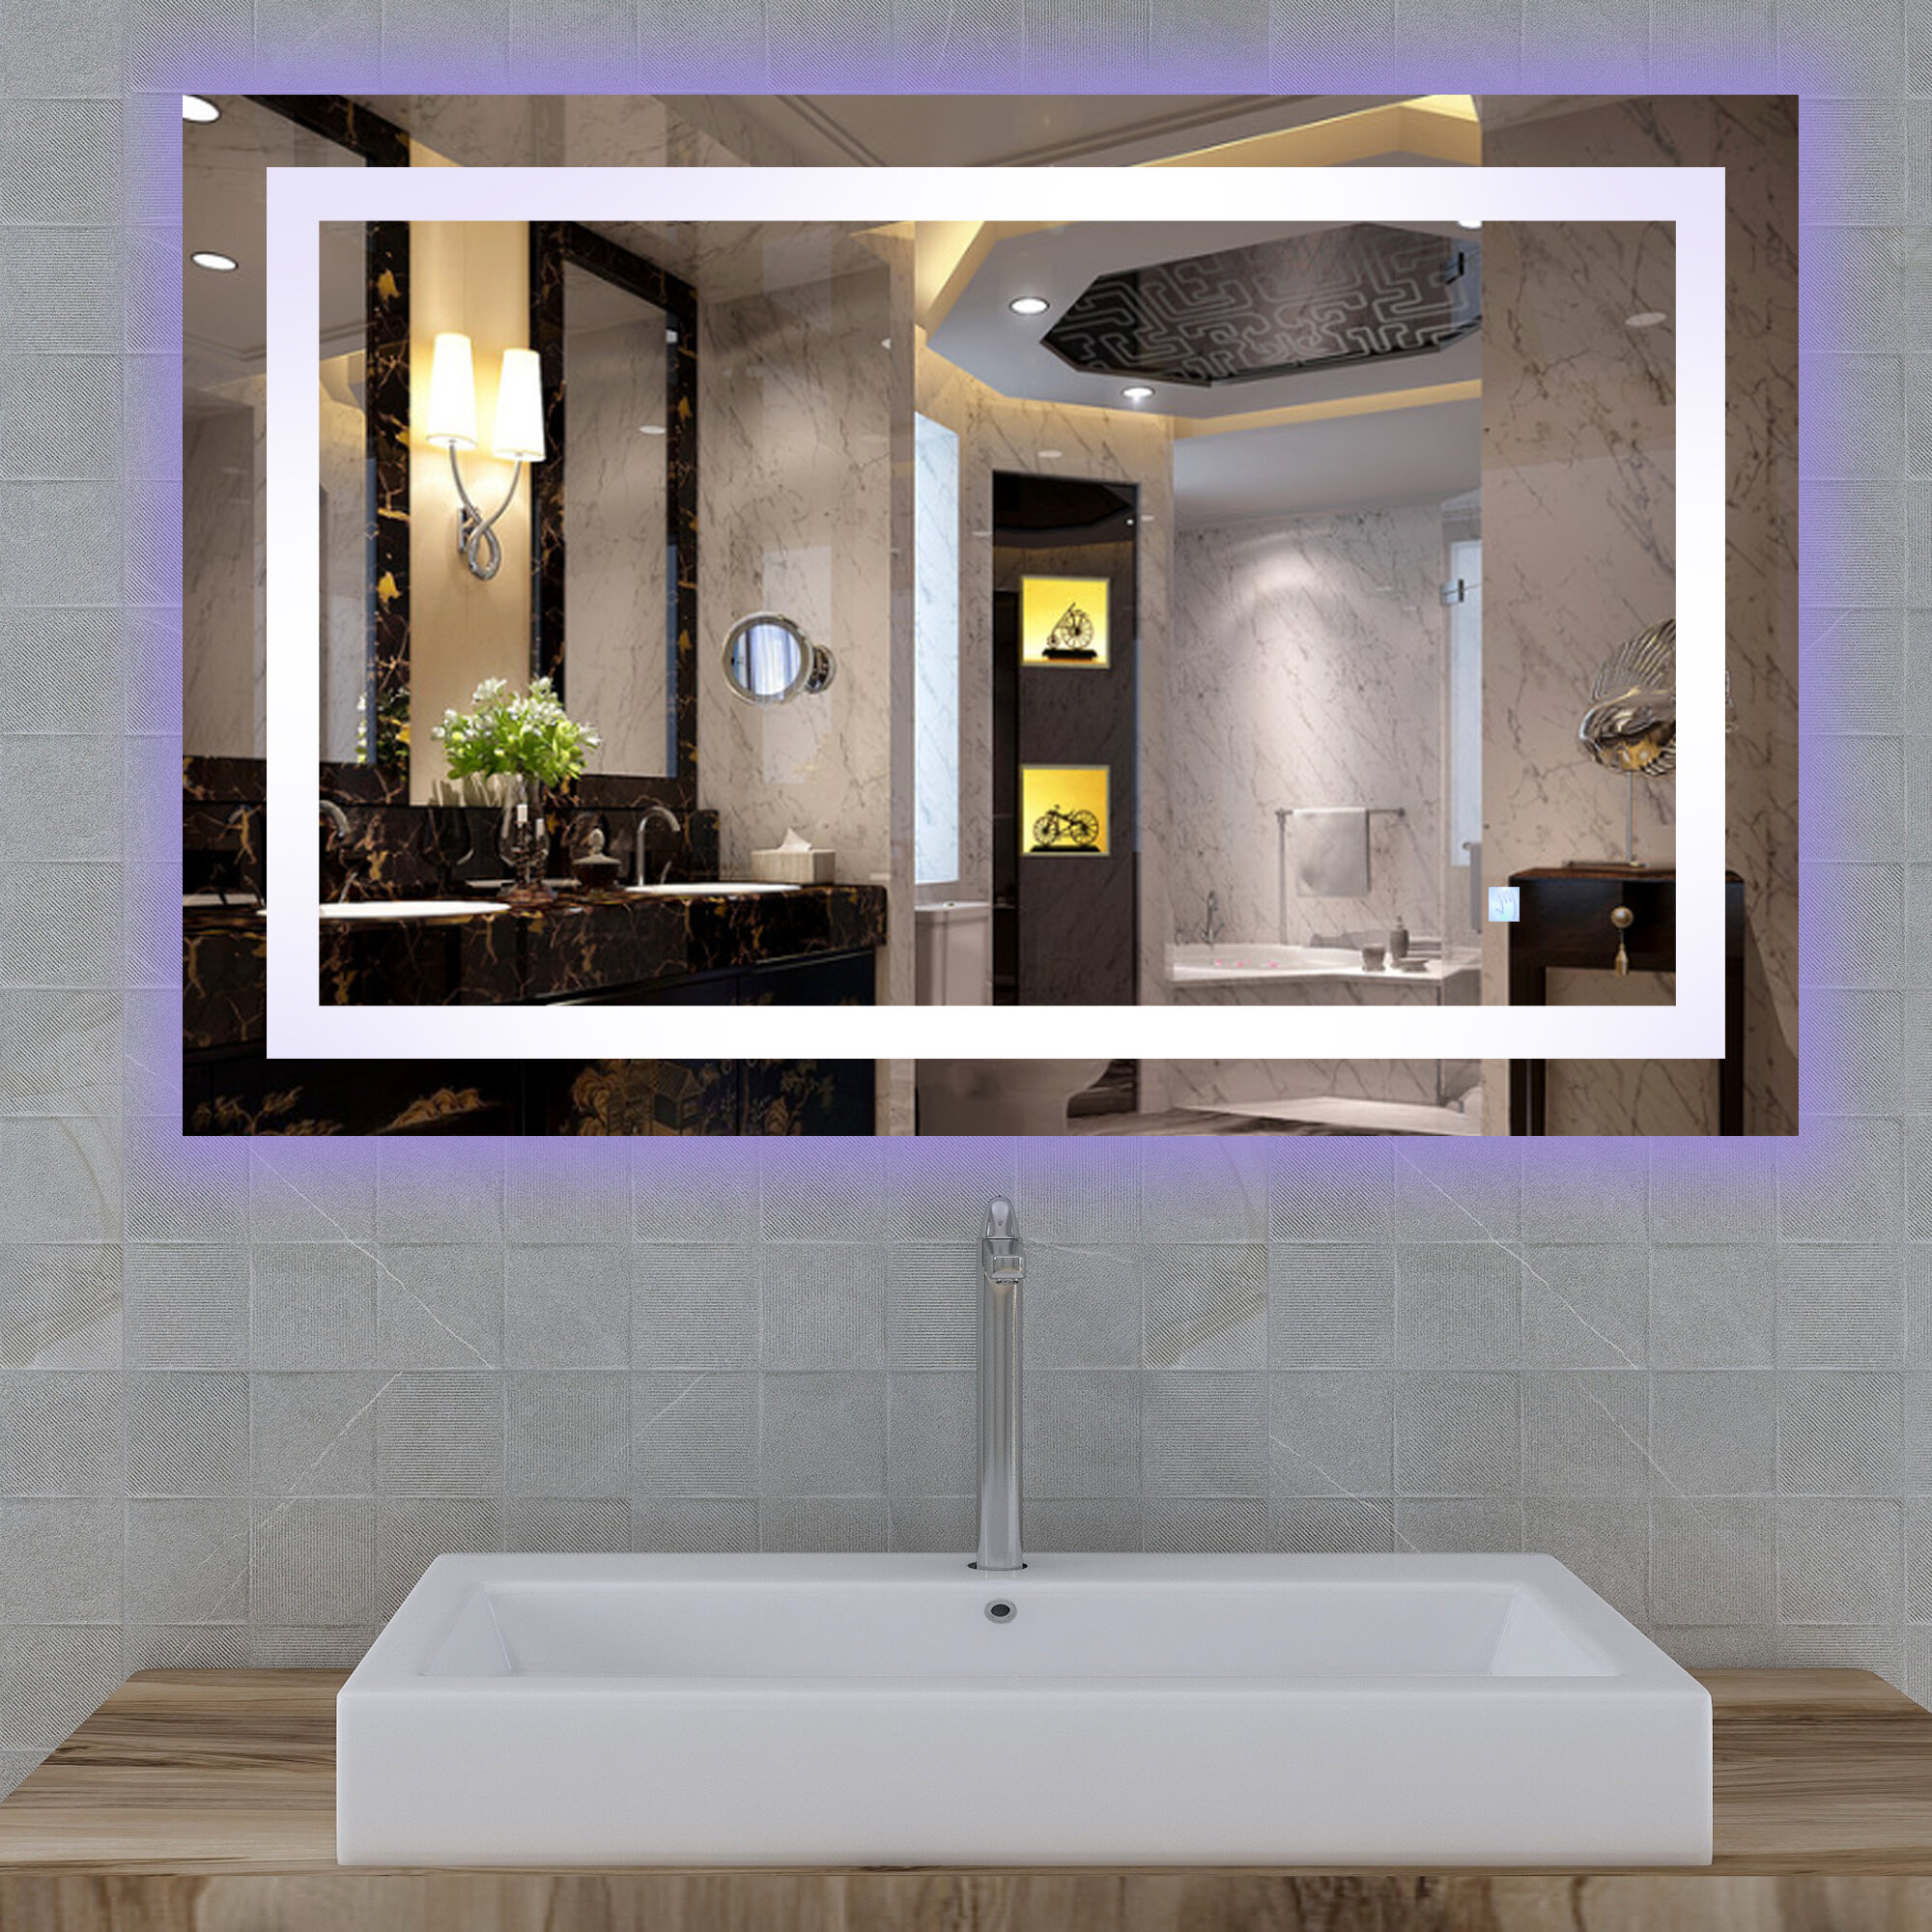 Sartori Lighted Bathroom/Vanity Mirror